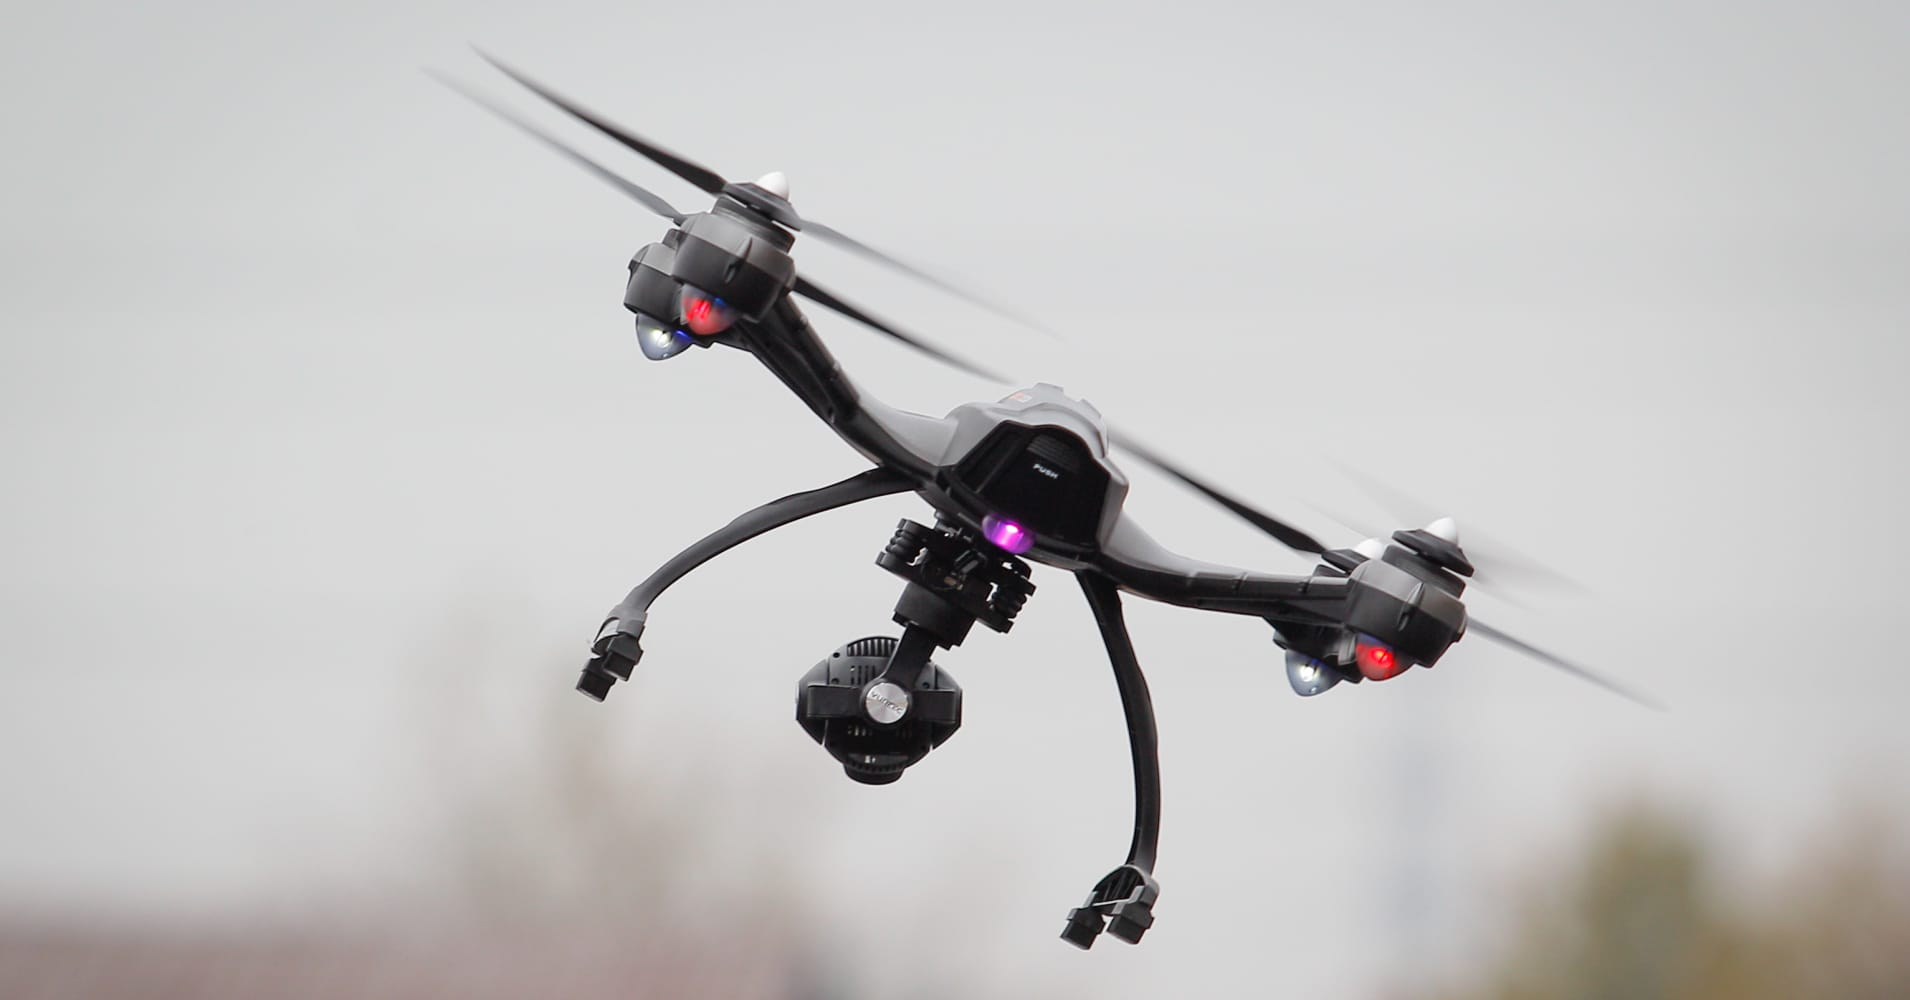 Drone complaints soar in the UK, leading to growing annoyance and concerns over snooping